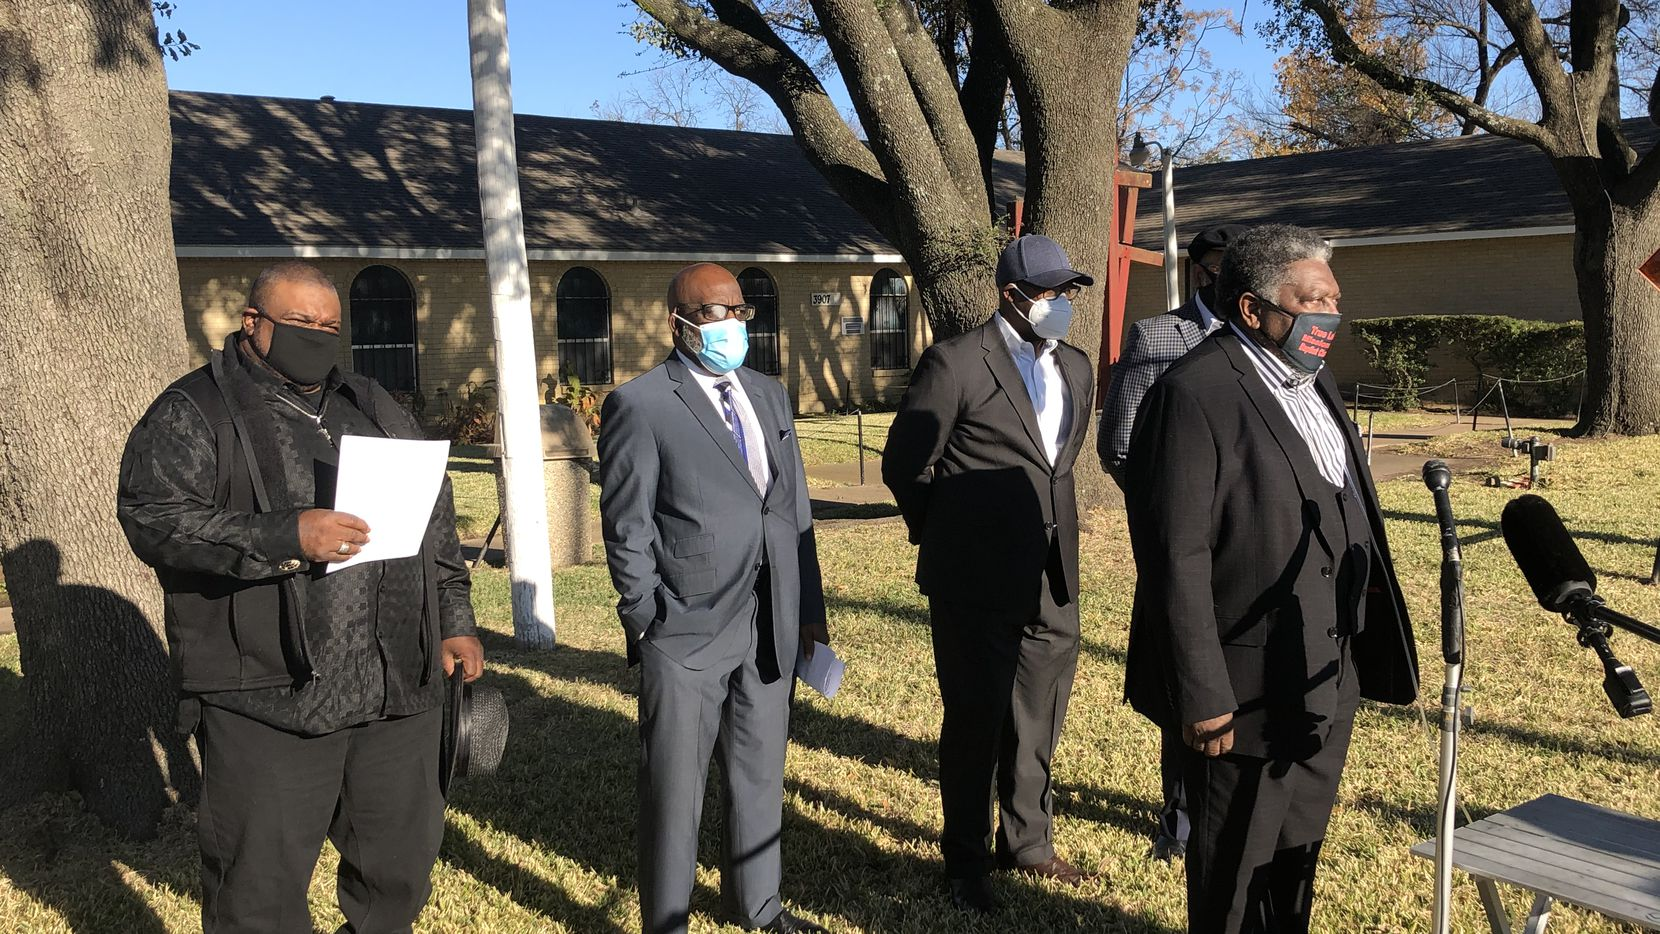 Rev. Donald Parish of True Lee Baptist Church in South Dallas speaks with reporters as fellow pastors line up behind him in December 2020.